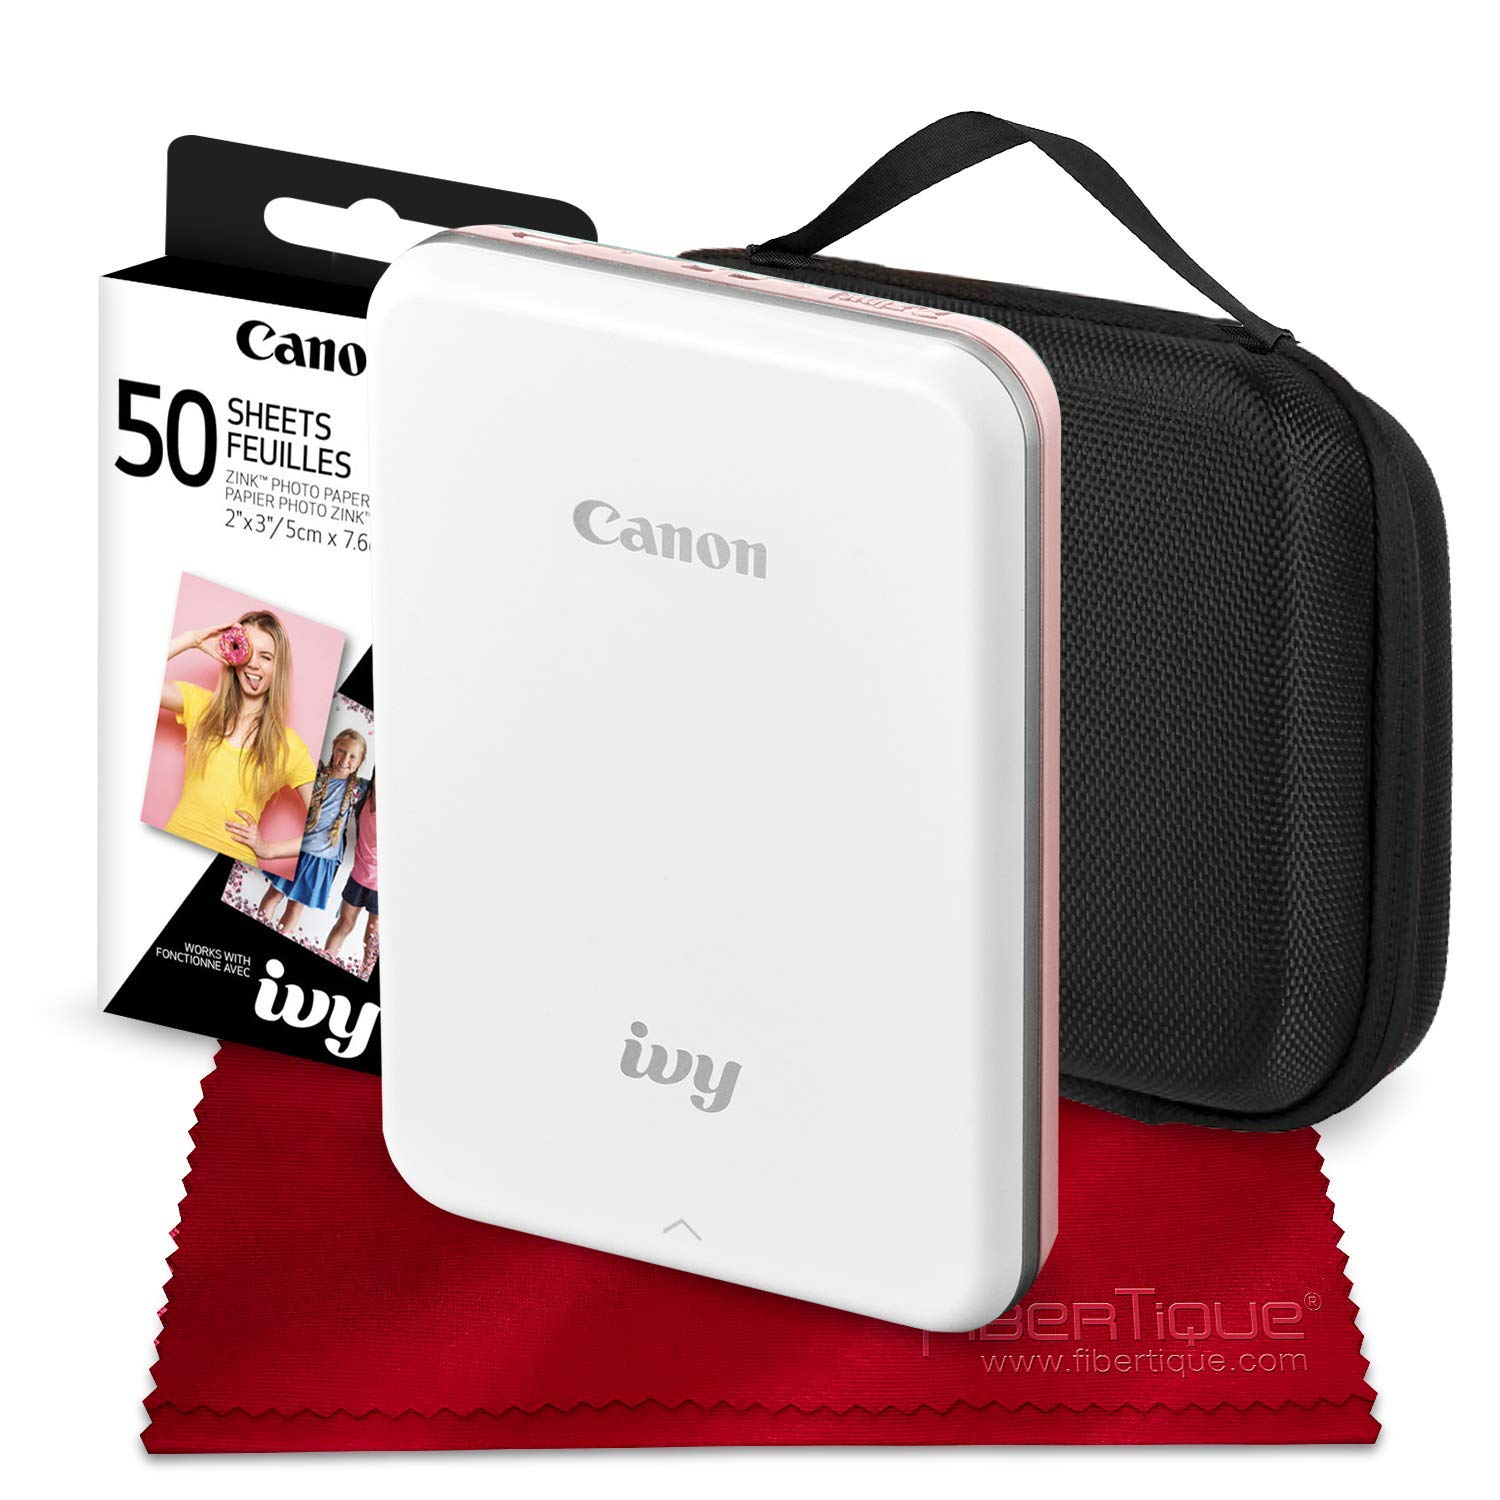 Canon Ivy Mini Mobile Photo Printer (Rose Gold) with Canon 2 x 3 Zink Photo Paper (50 Sheets) and Hard Shell Case Deluxe Bundle by Canon